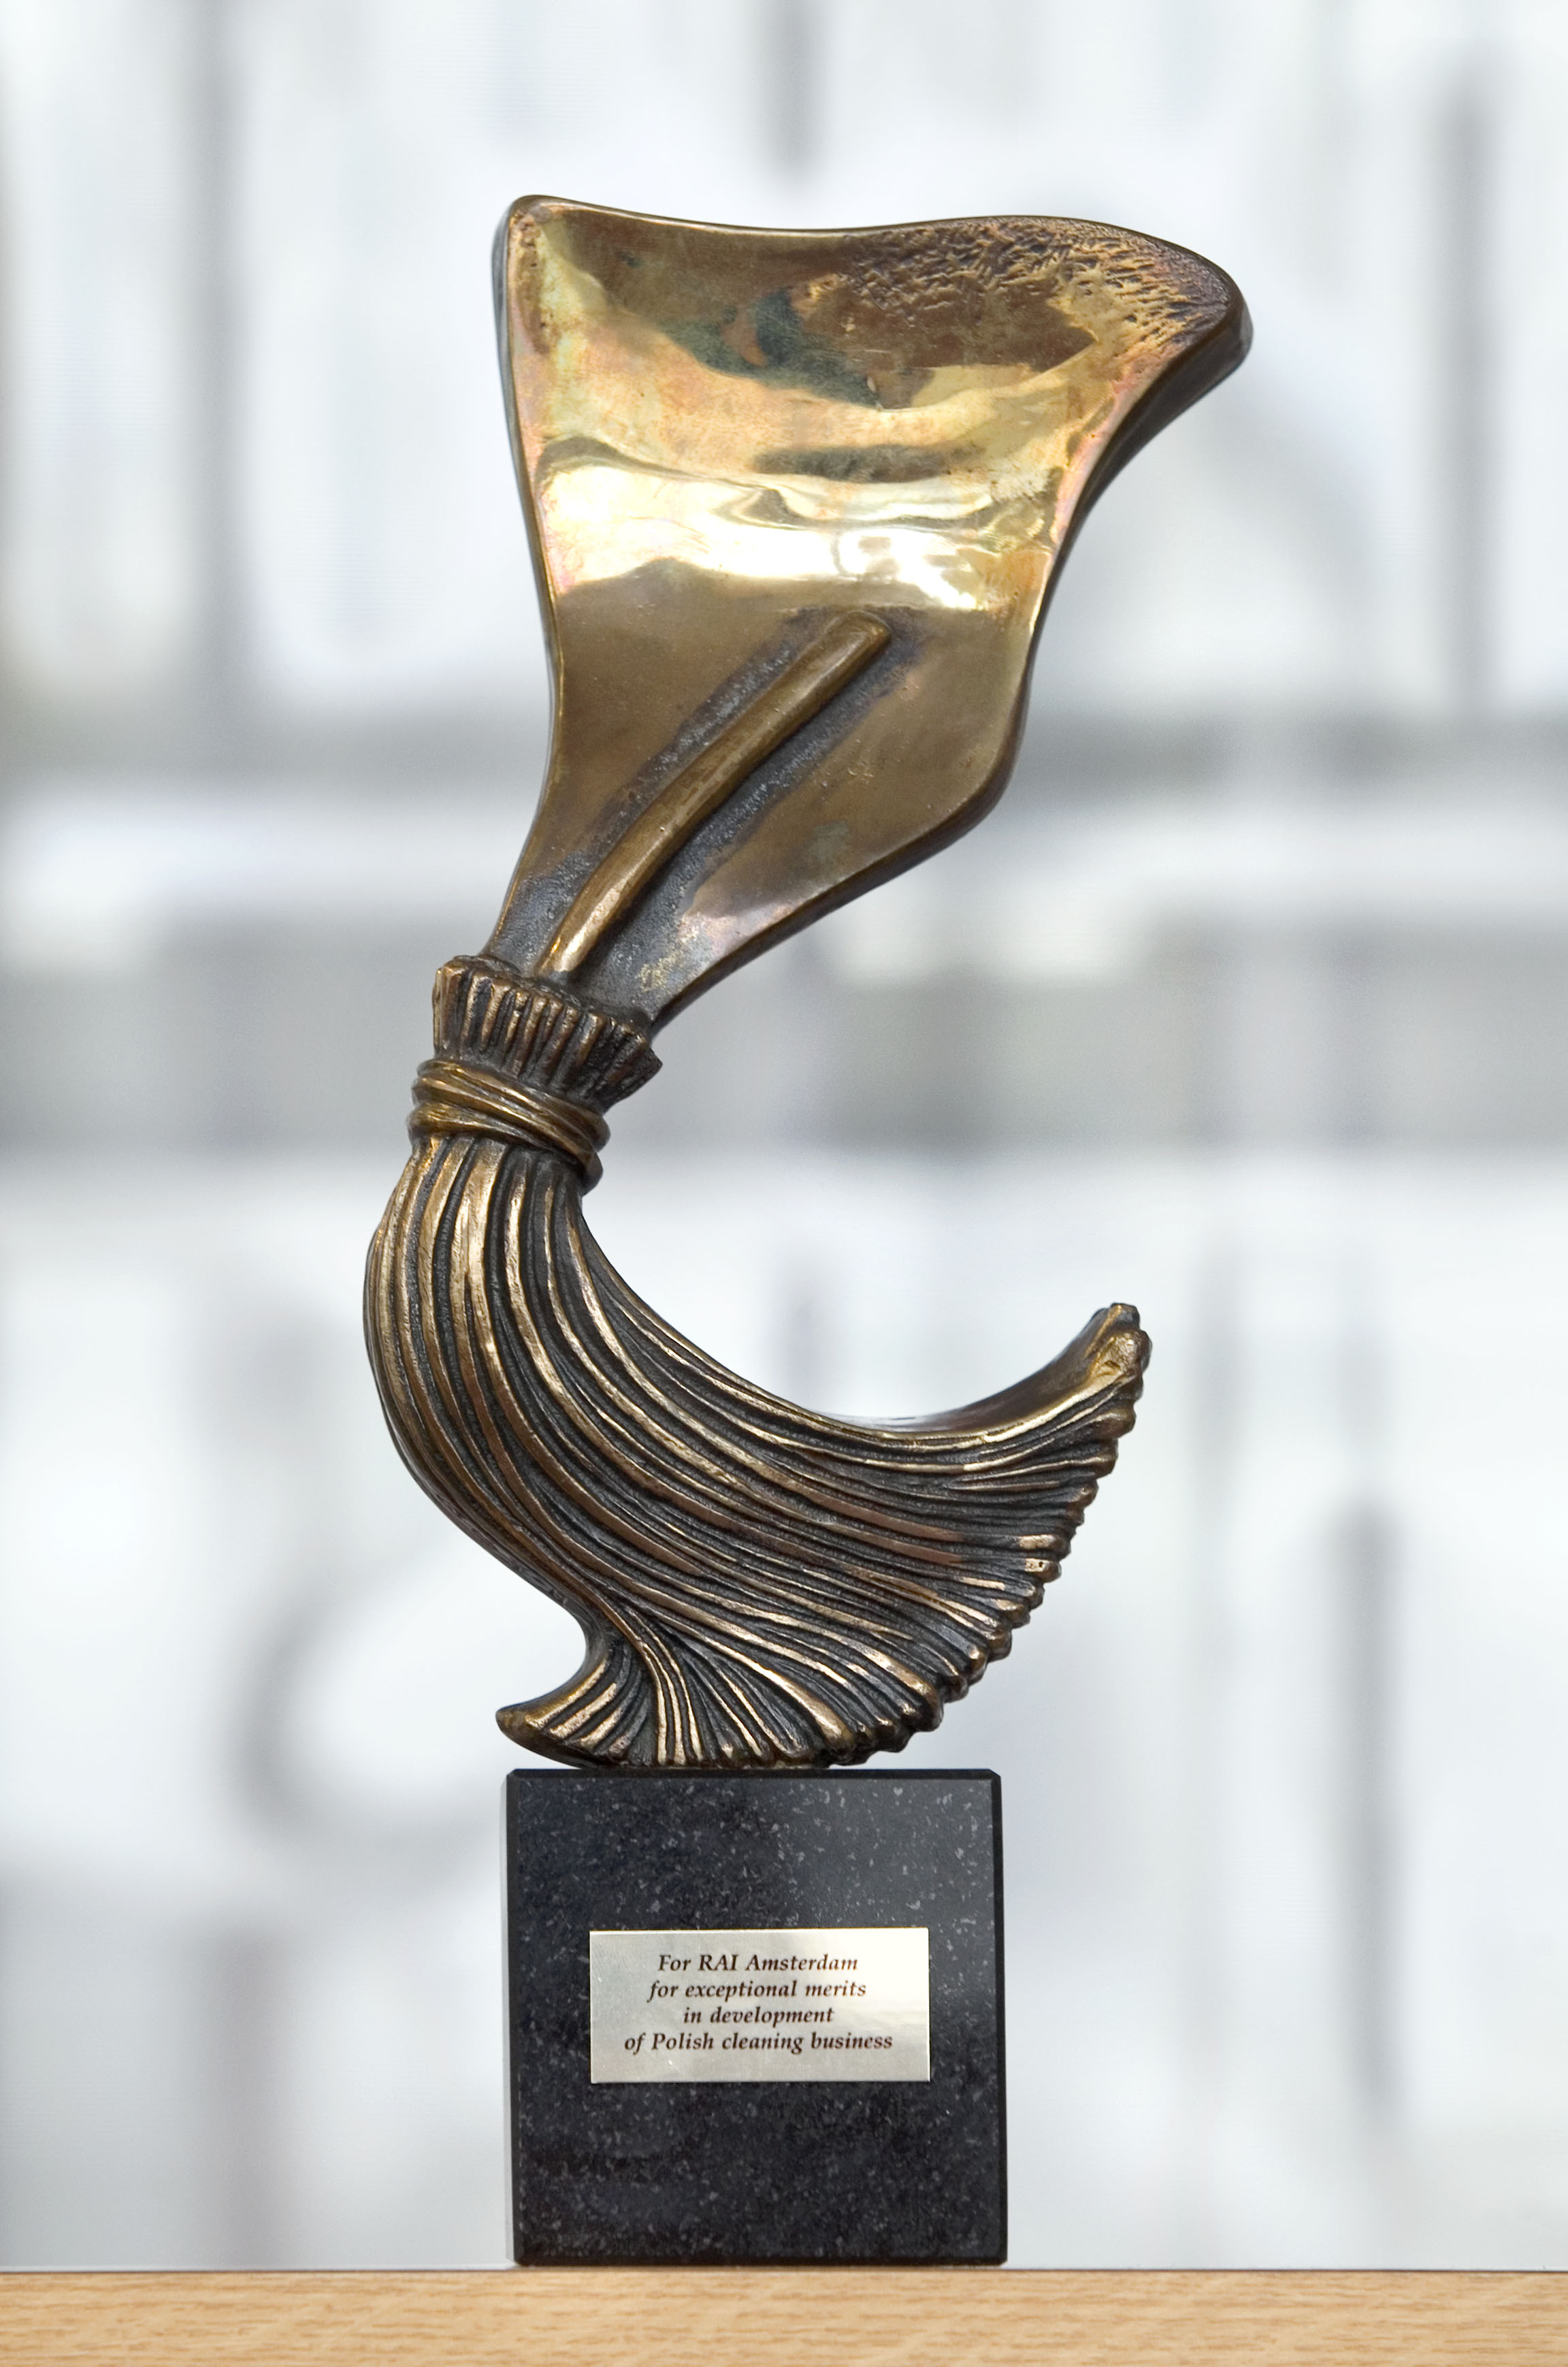 The Golden Broom Award